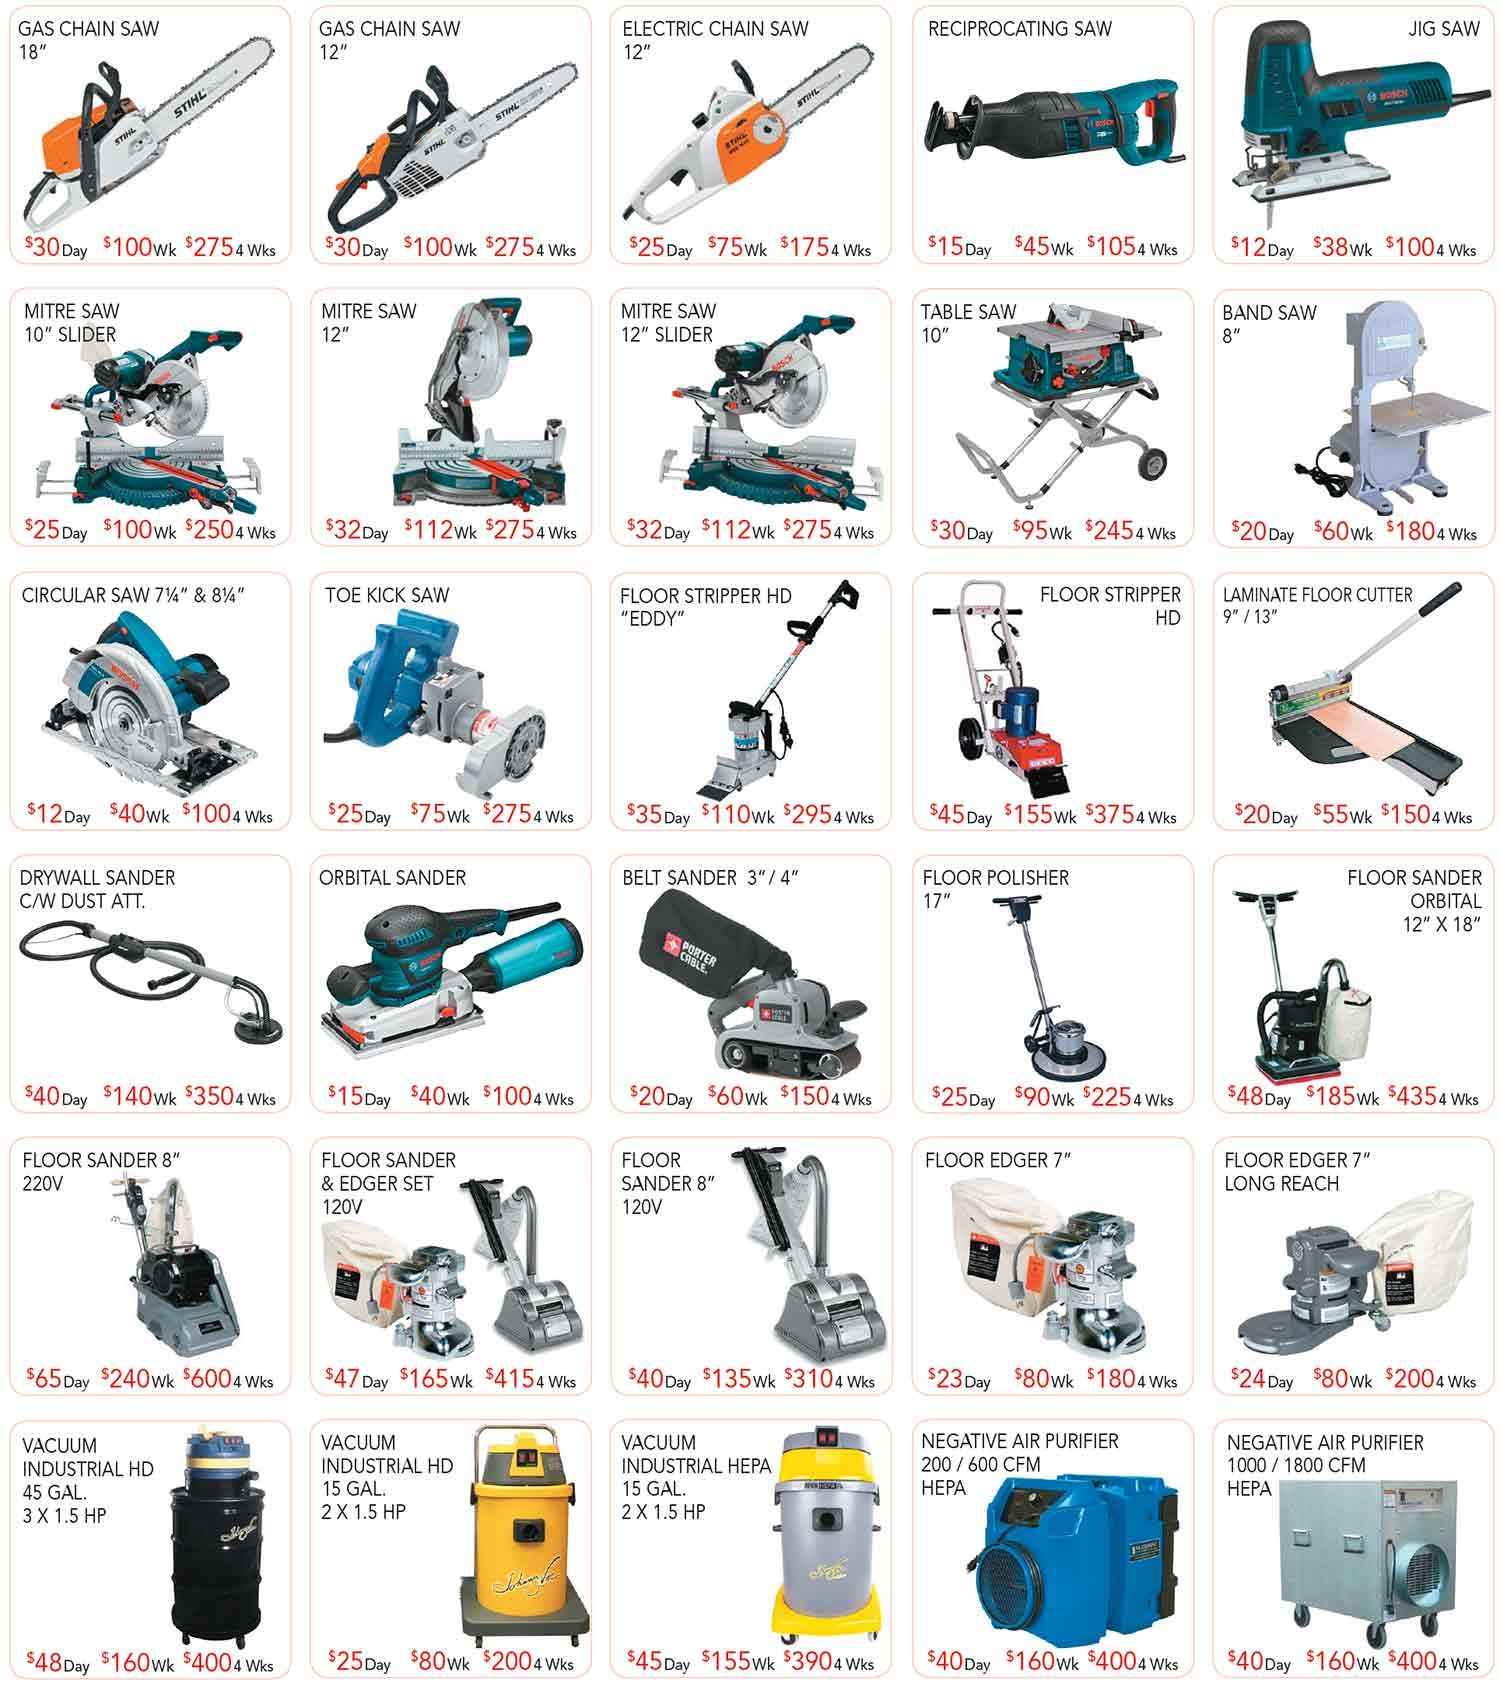 Rent A Saw Montreal Wood Carpentry Location Ferrento